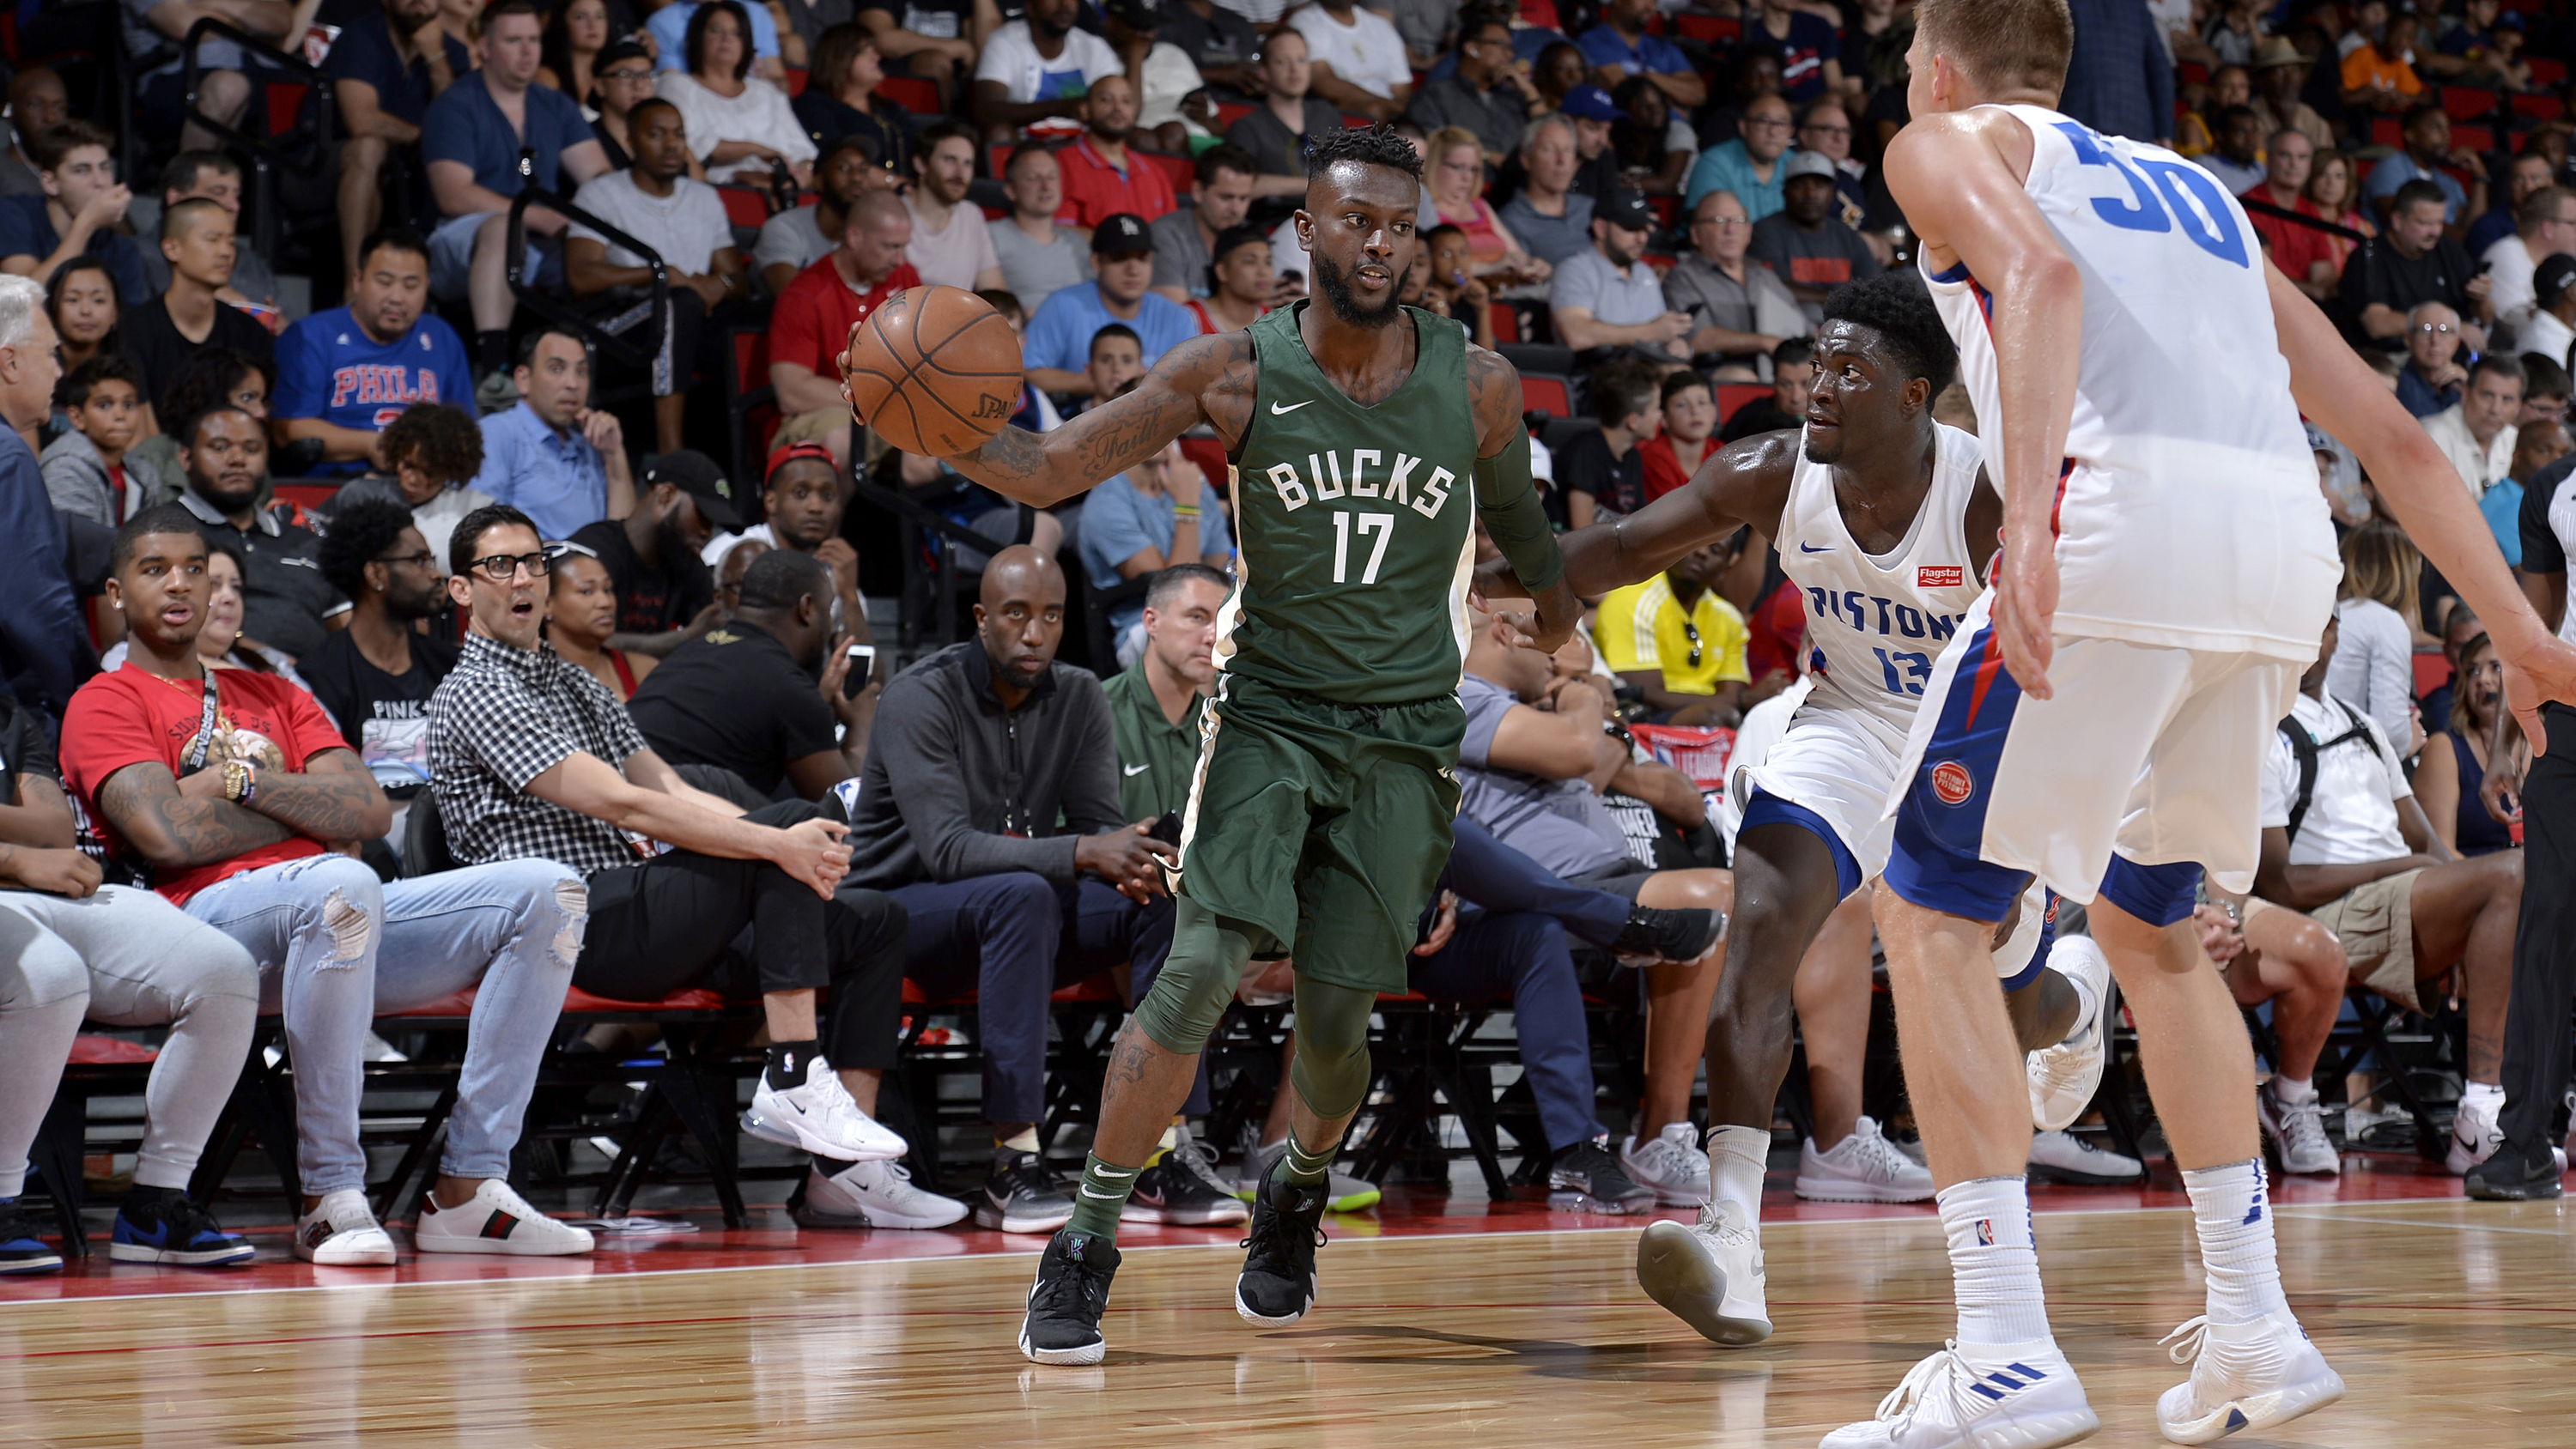 GAME RECAP: Bucks 90 - Pistons 63 | 7.6.18